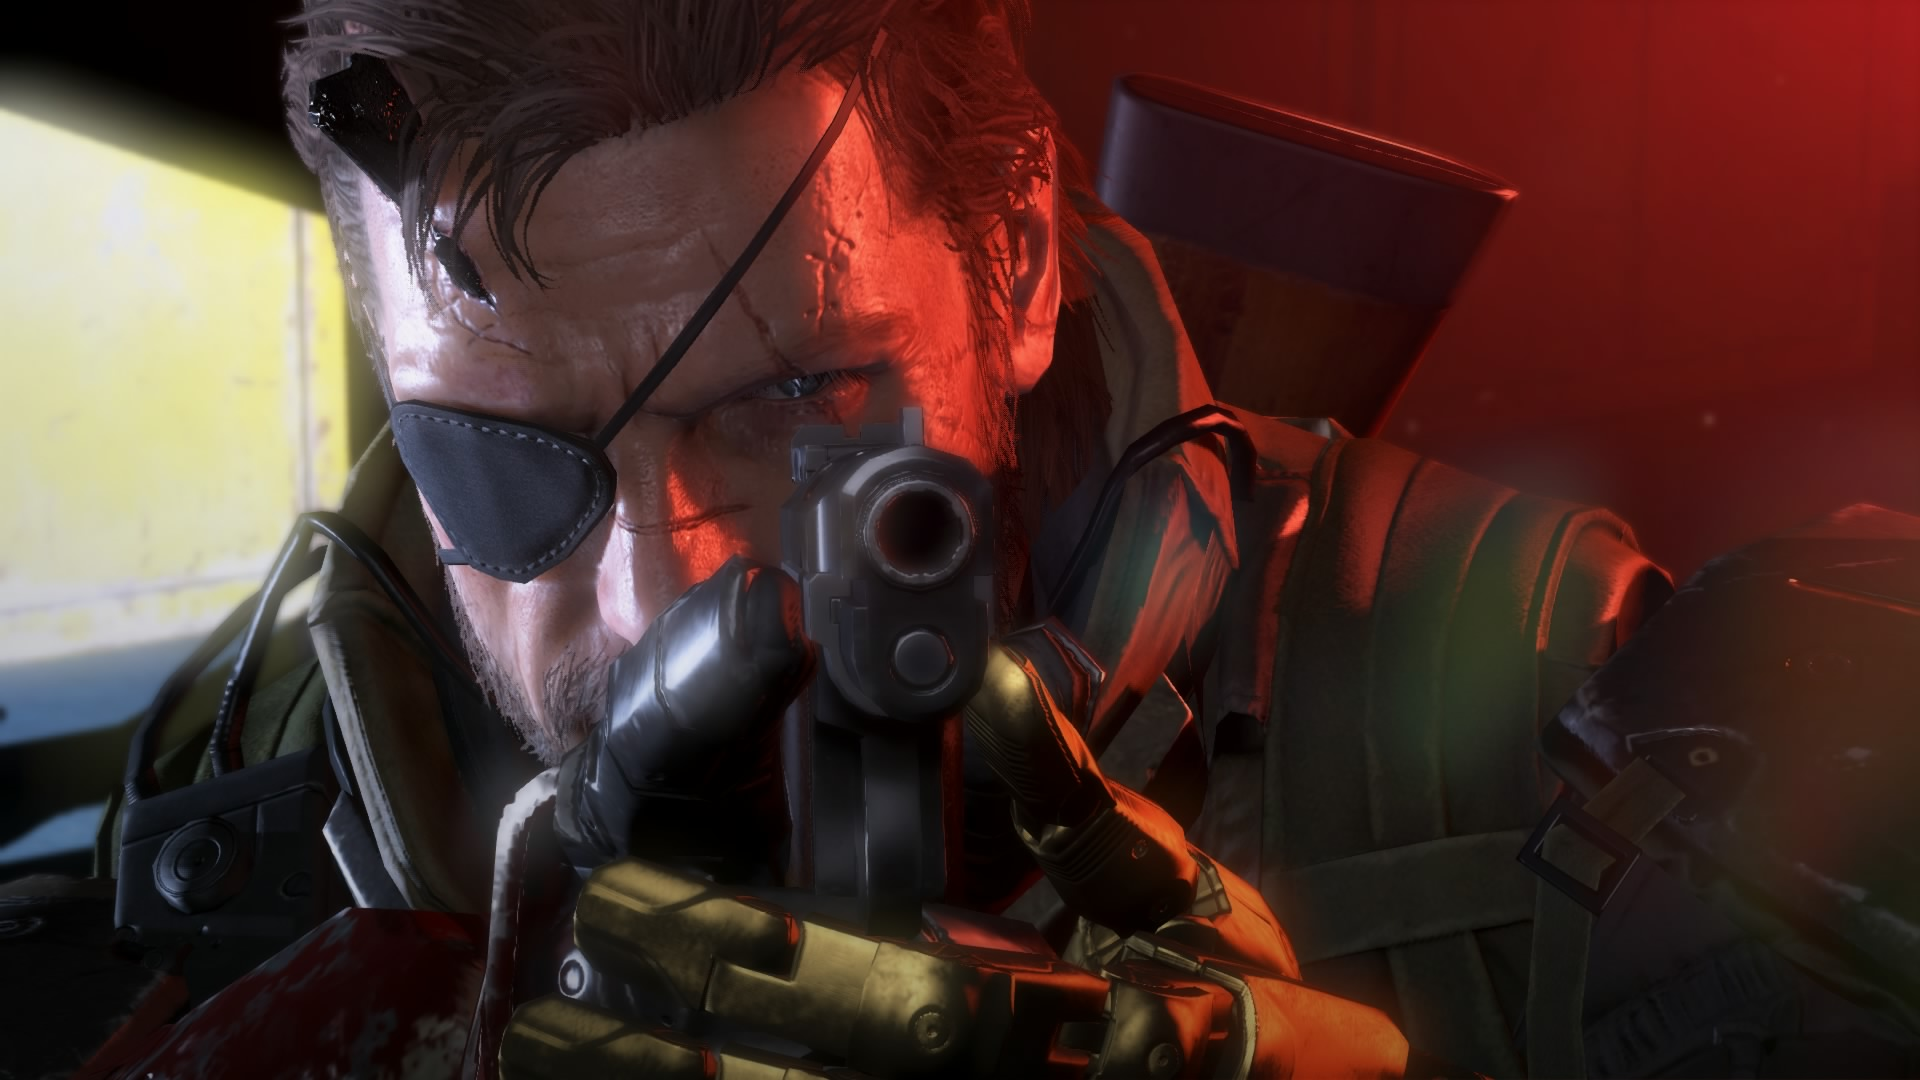 Metal Gear Solid 5 The Phantom Pain Episode 12